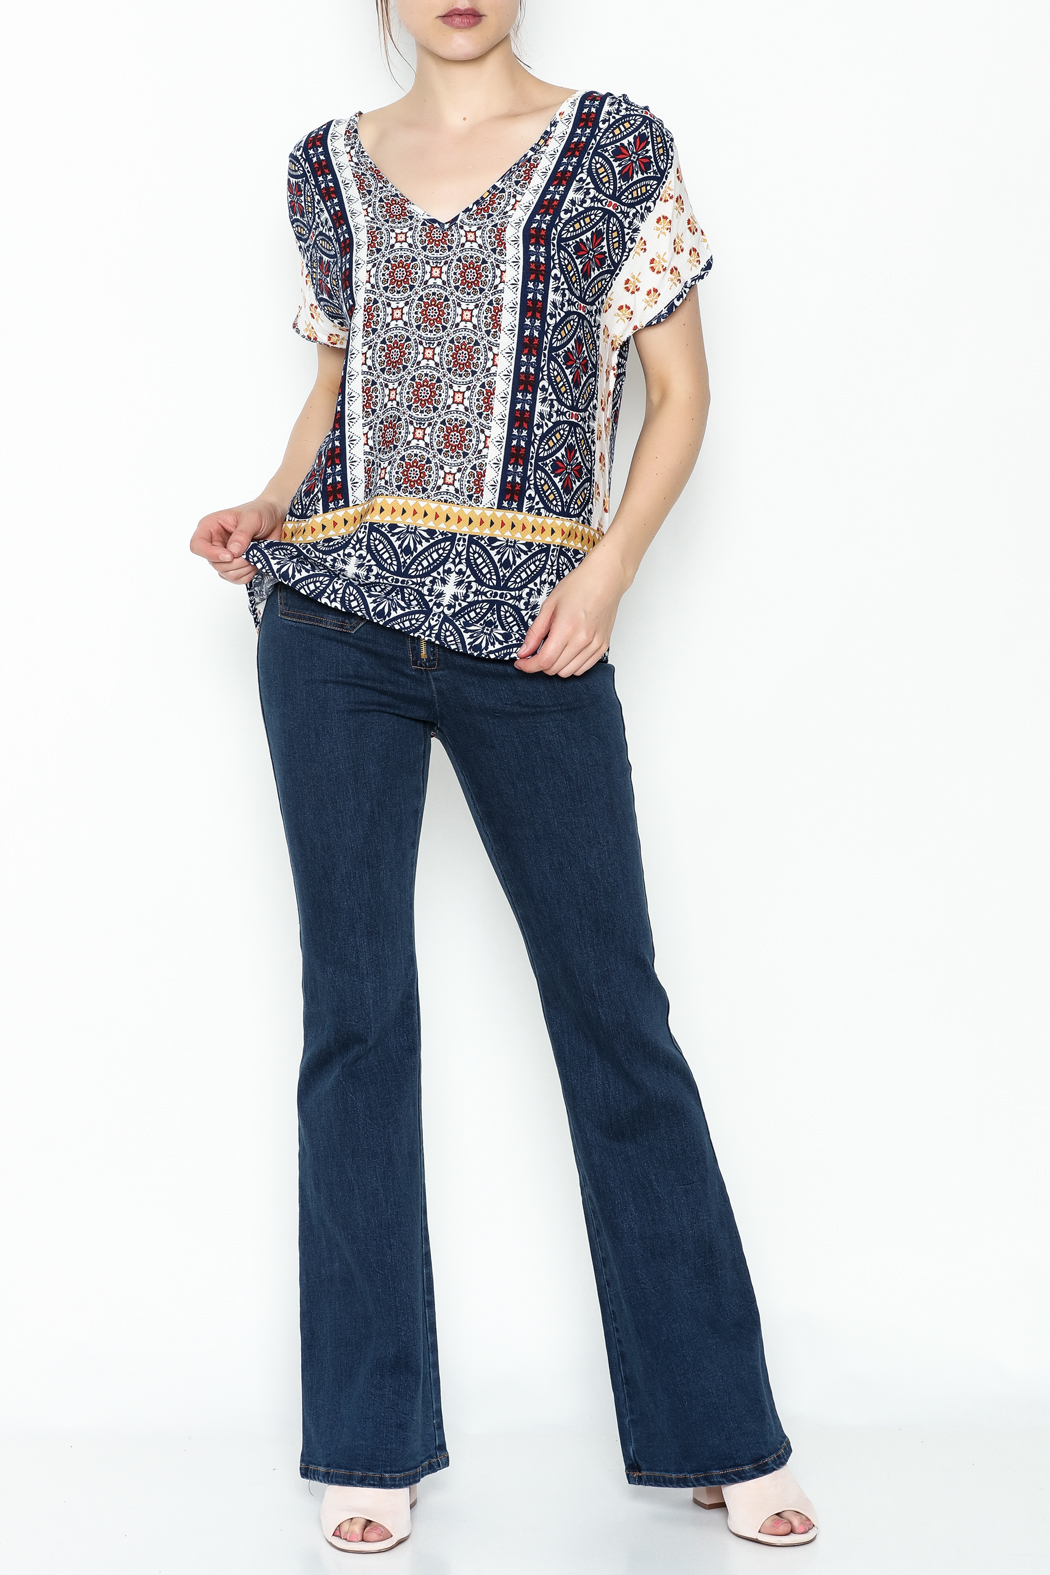 Renee C Printed Keyhole Top - Front Cropped Image